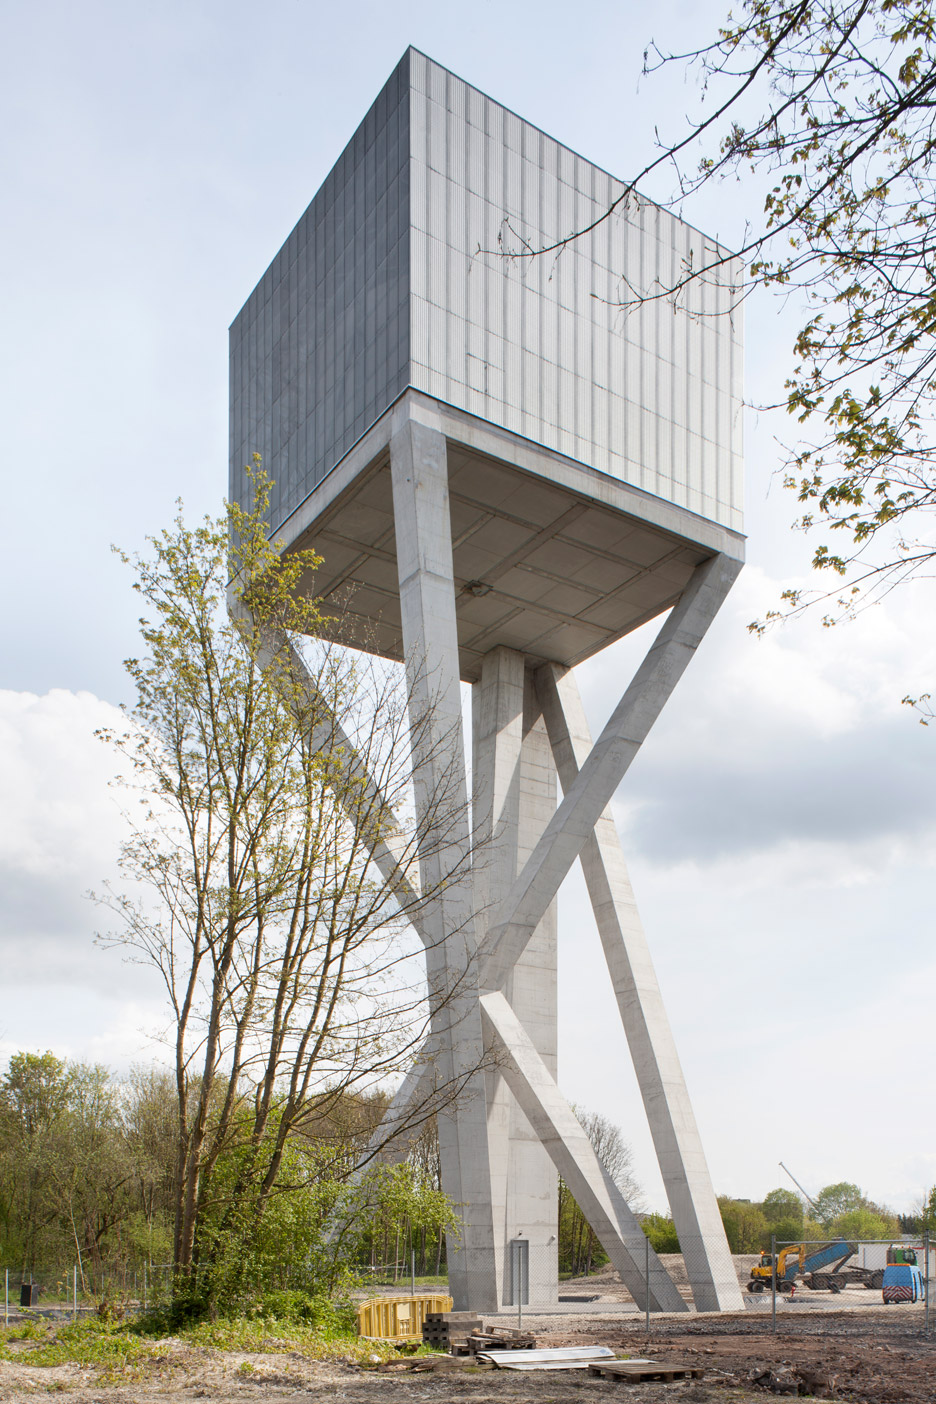 Water-Tower_Chateau-D'eau_V-Plus_Ghlin-Baudour-industrial-estate_Brussels_Maxime-Delvaux_dezeen_936_0